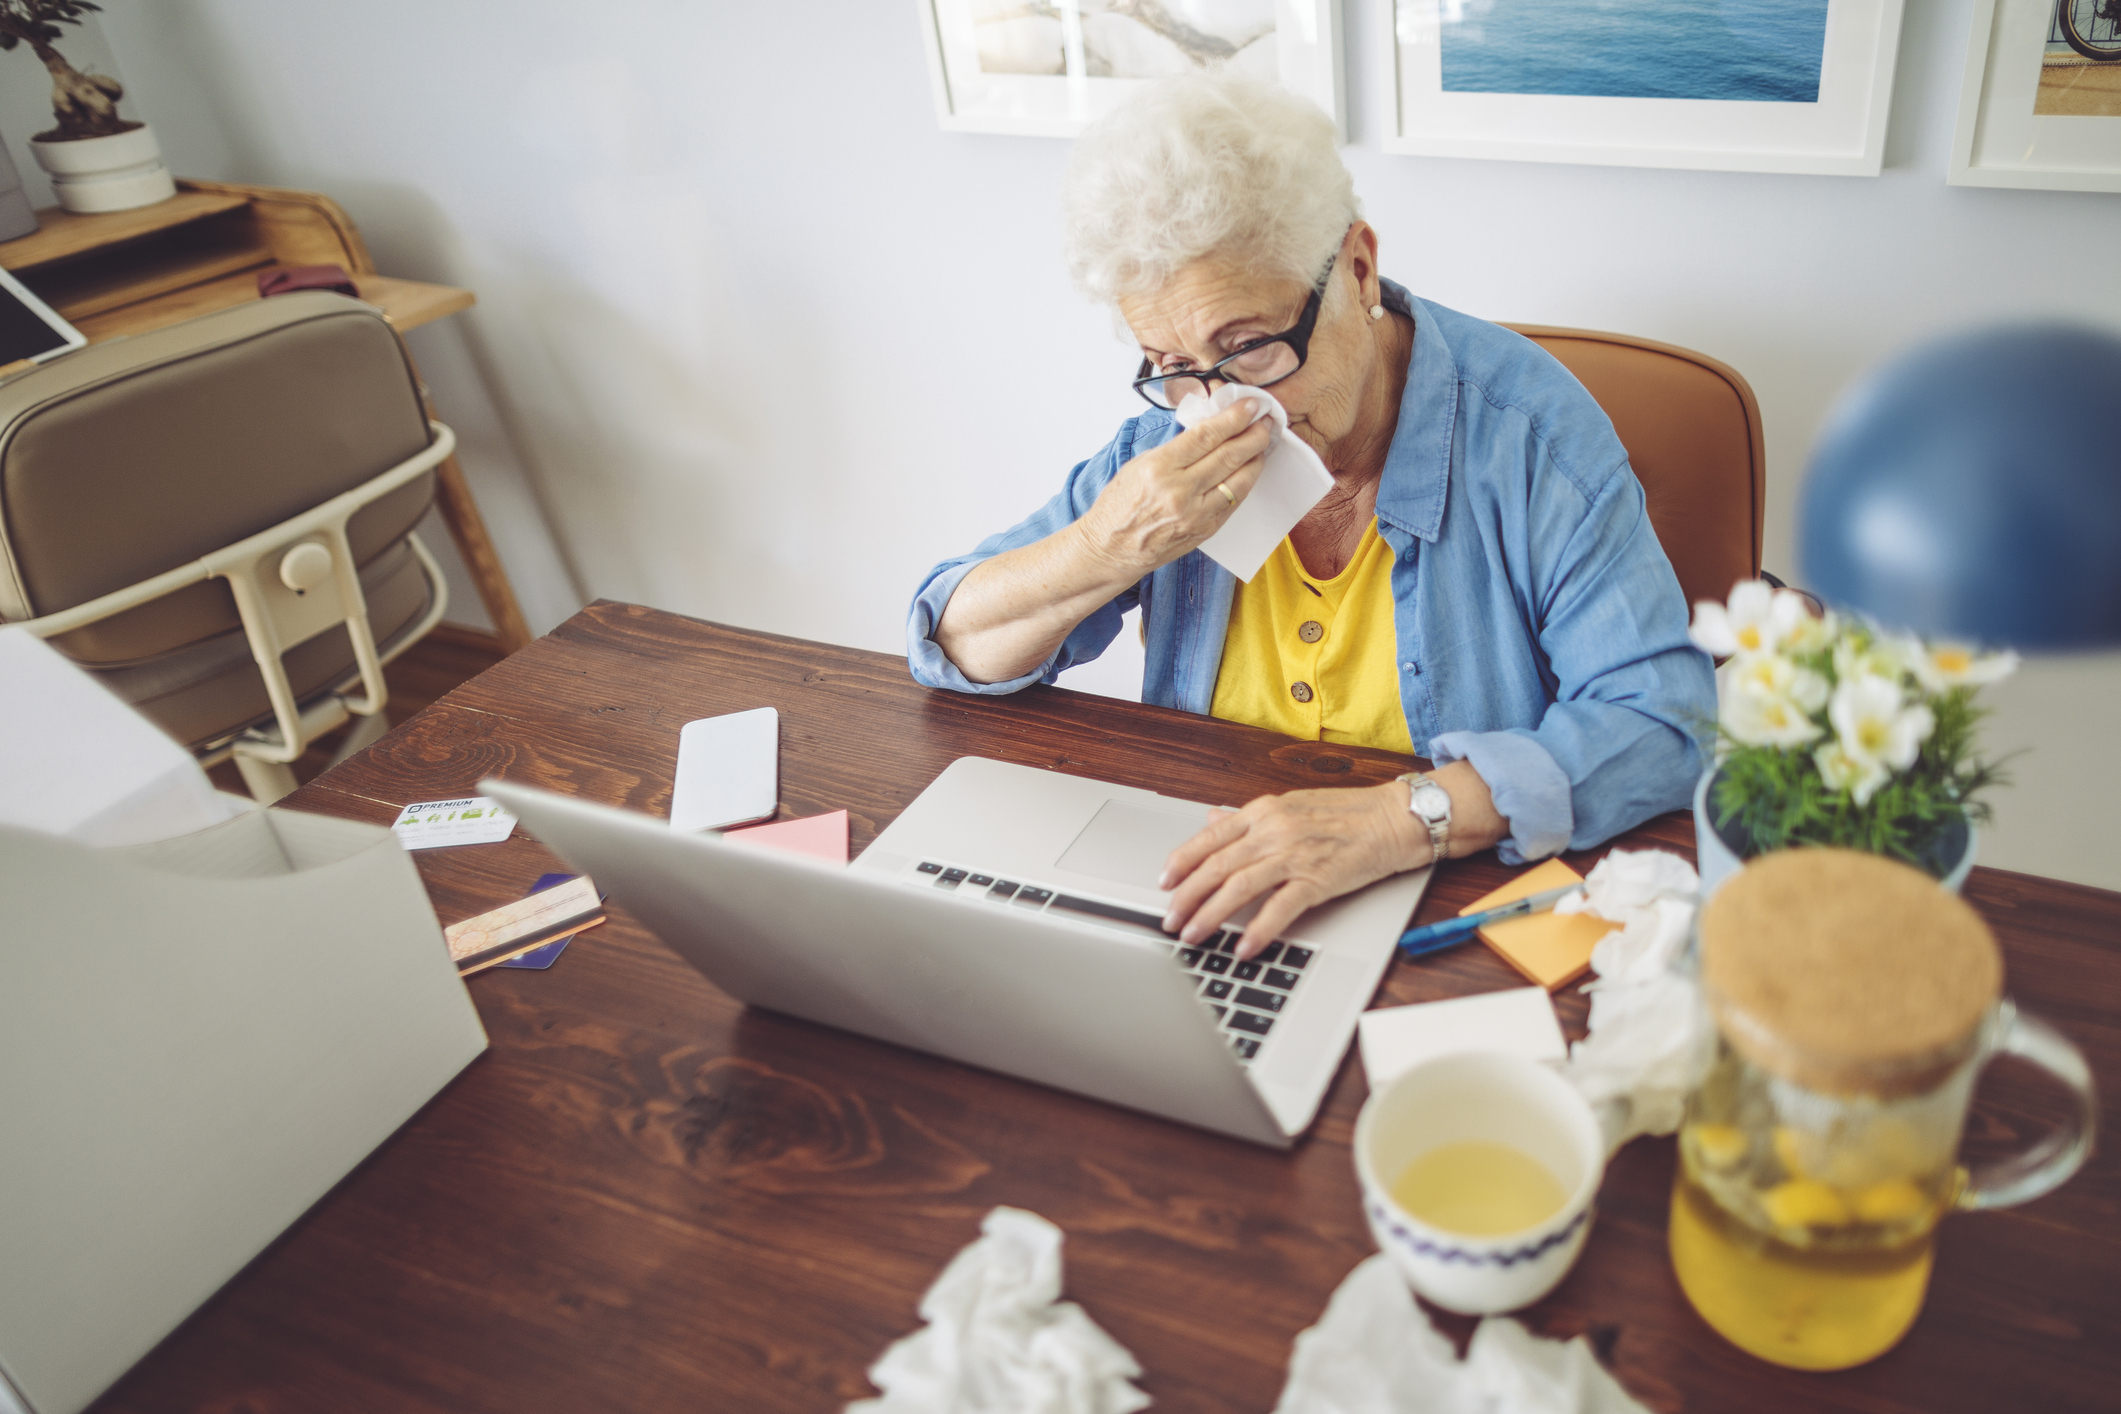 Senior woman at home on computer surrounded by used tissues.